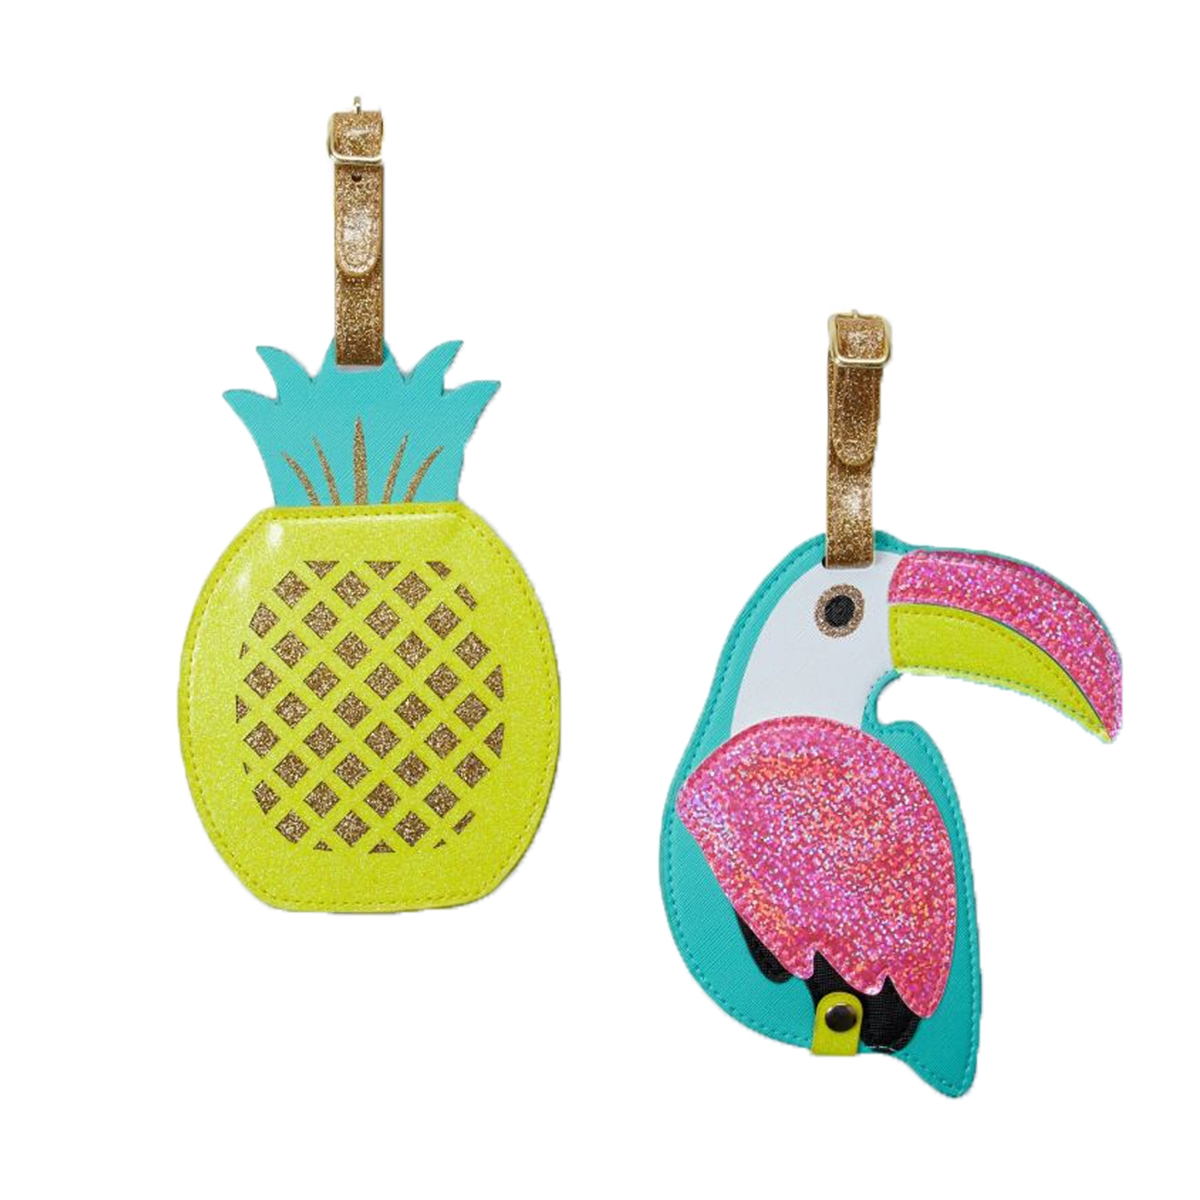 2 Pack Luggage Tags Pineapple Handbag Tag For Travel Tags Accessories